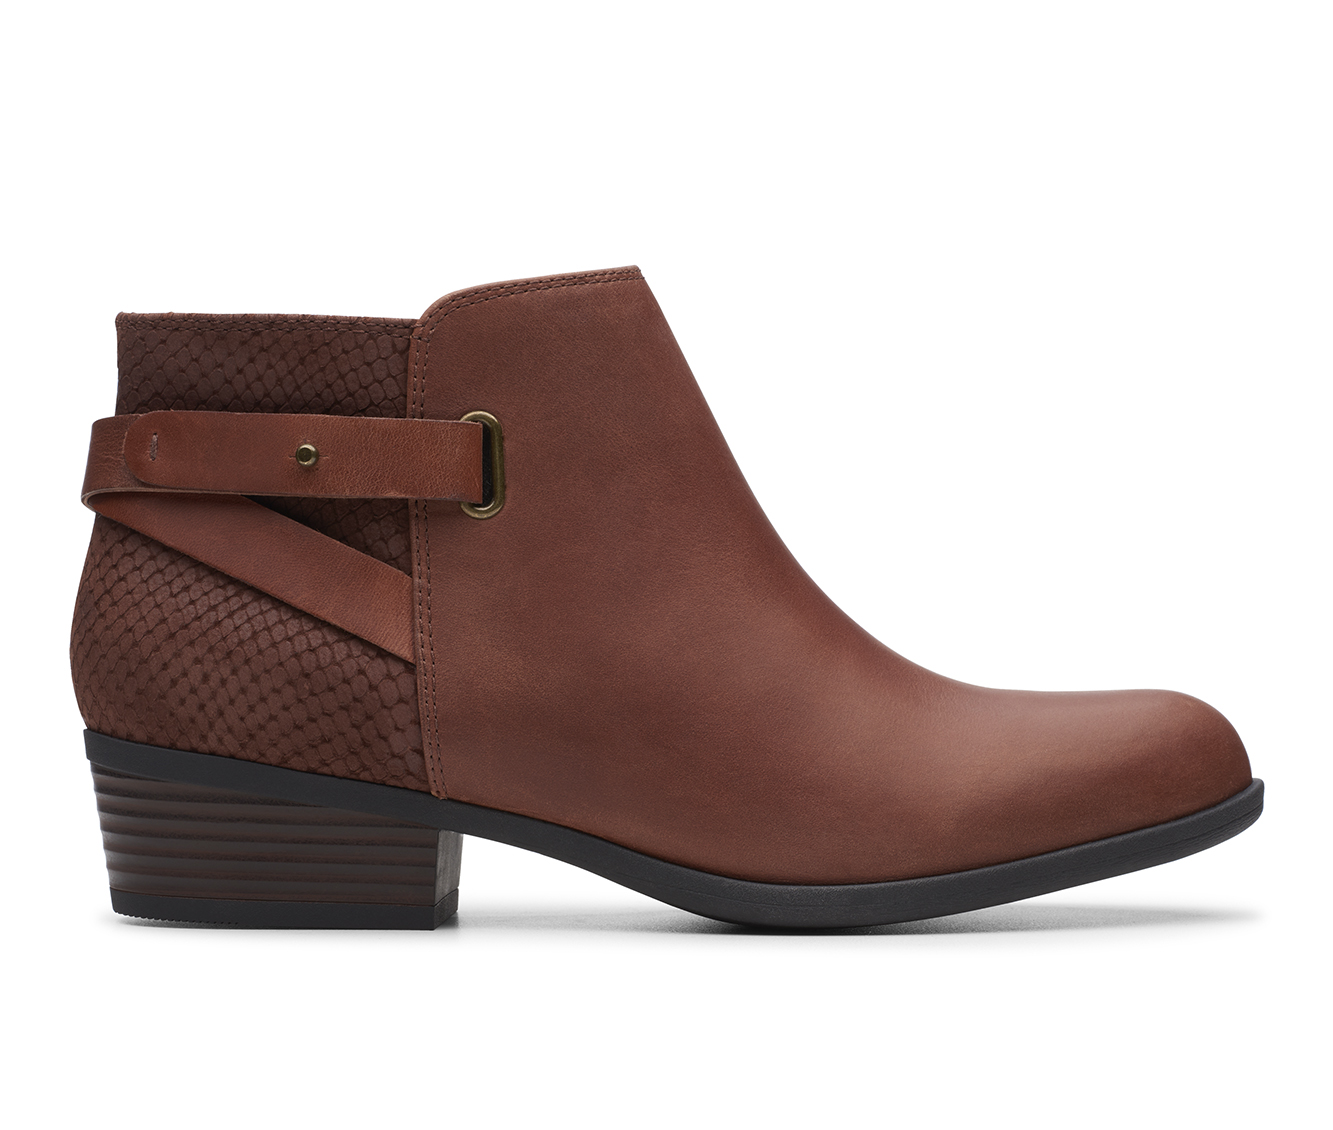 Clarks Addiy Gladys Women's Boots (Brown - Leather)